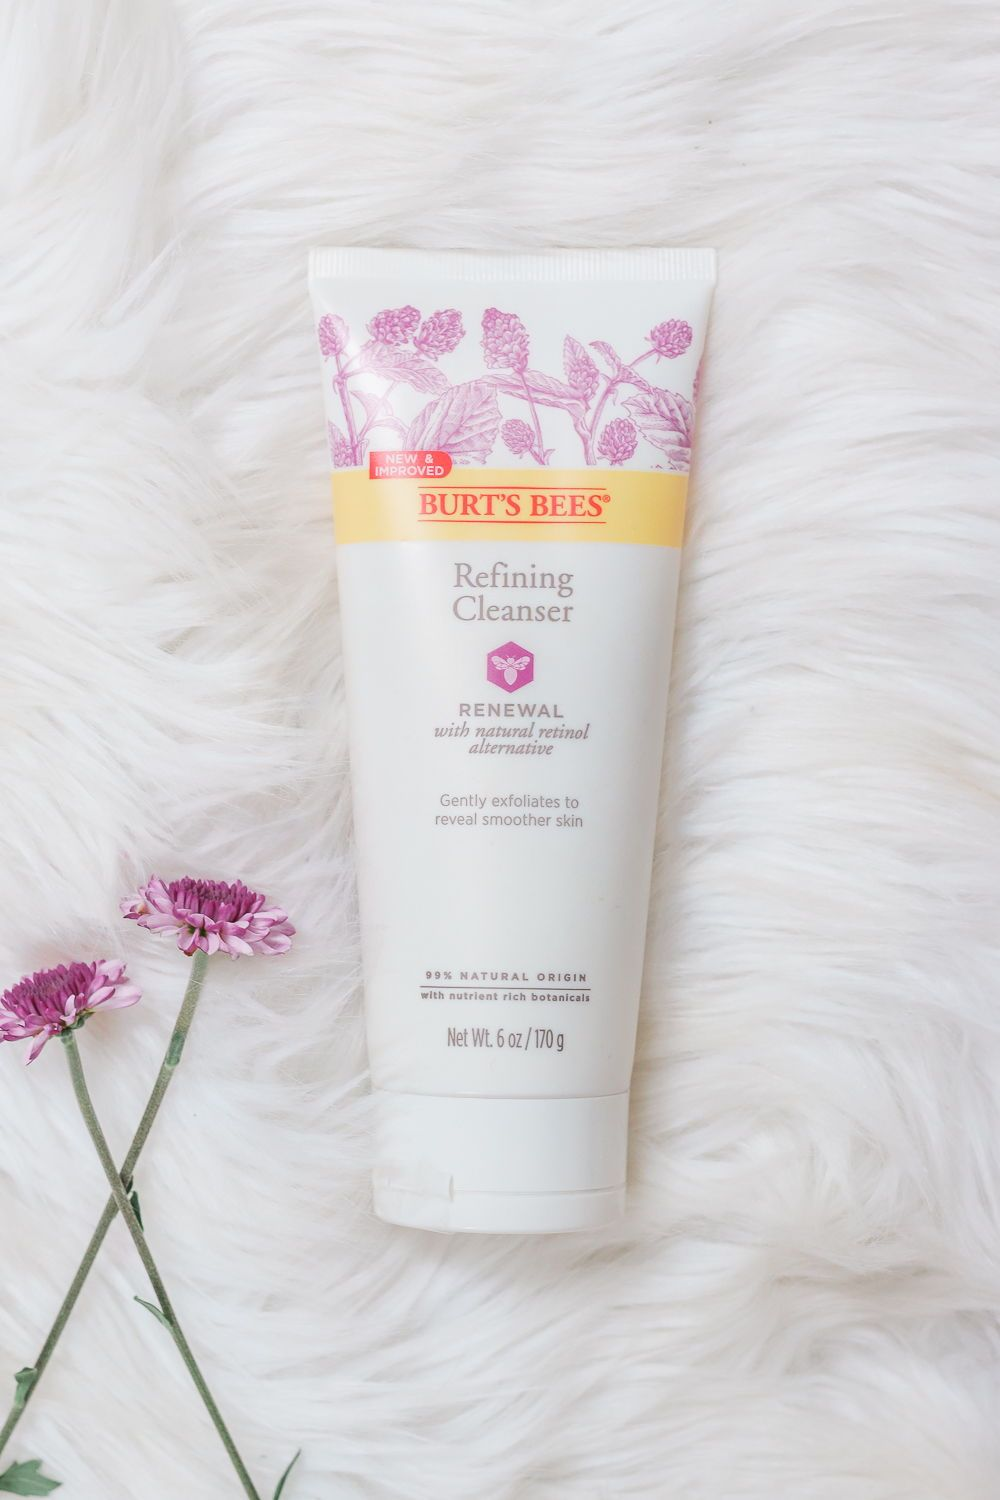 Burt's Bees Renewal Skincare Review + DIY Flower Gift Box